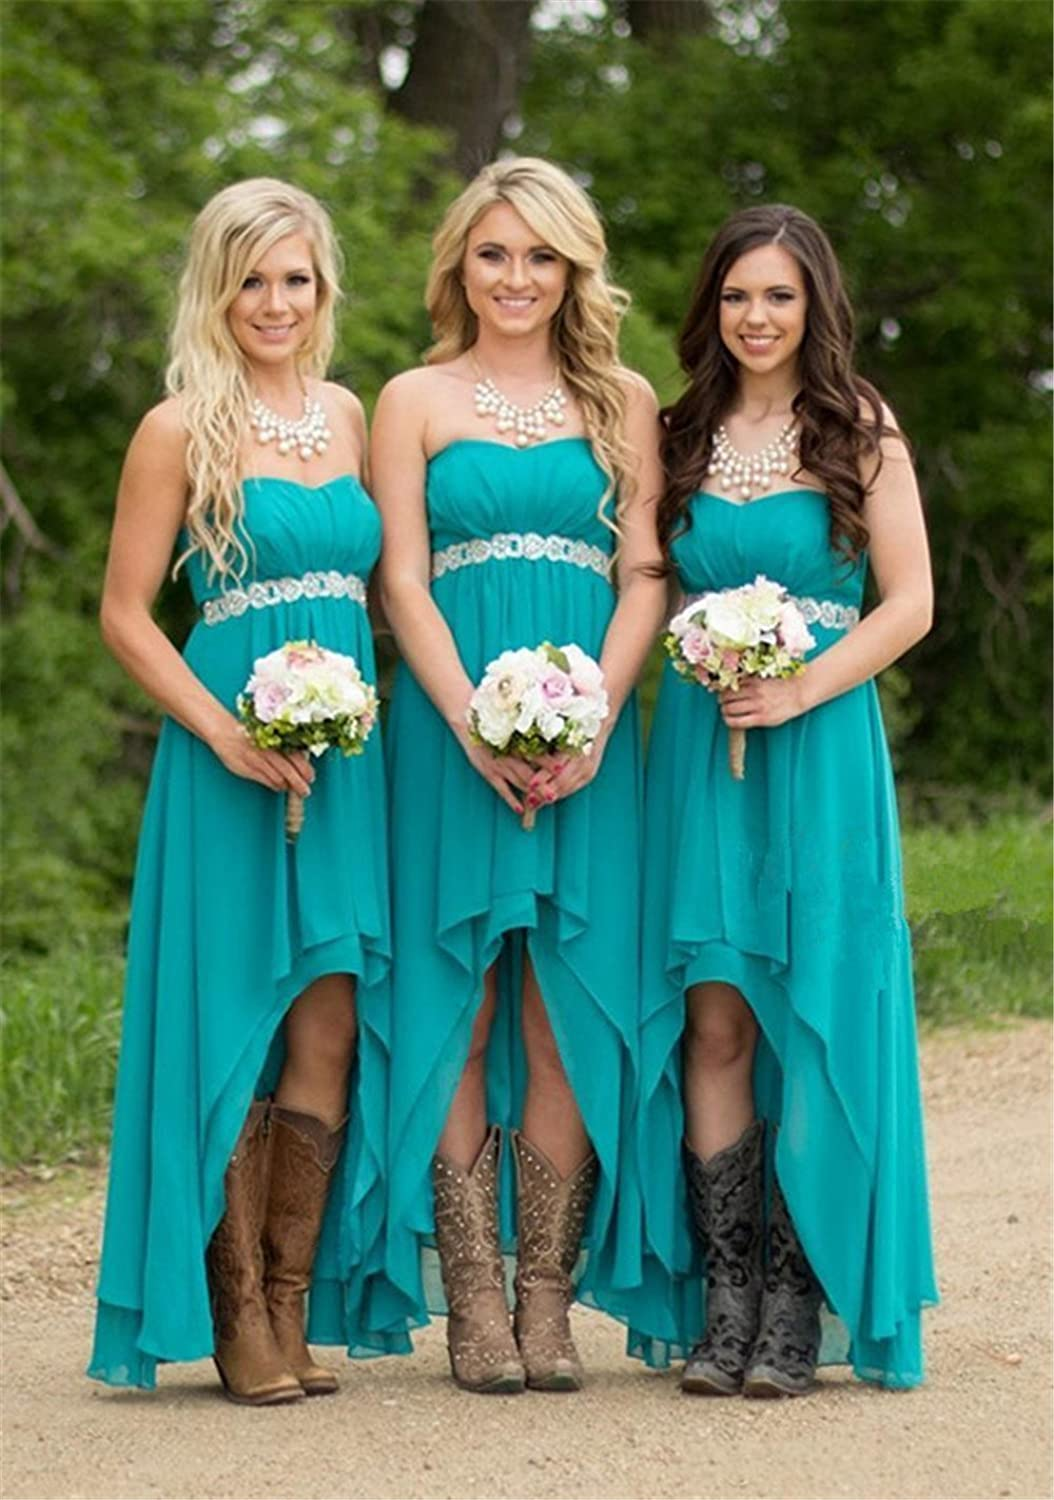 Dwu chiffon high low bridesmaid dresses rustic bridal party gown dwu chiffon high low bridesmaid dresses rustic bridal party gown at amazon womens clothing store ombrellifo Image collections